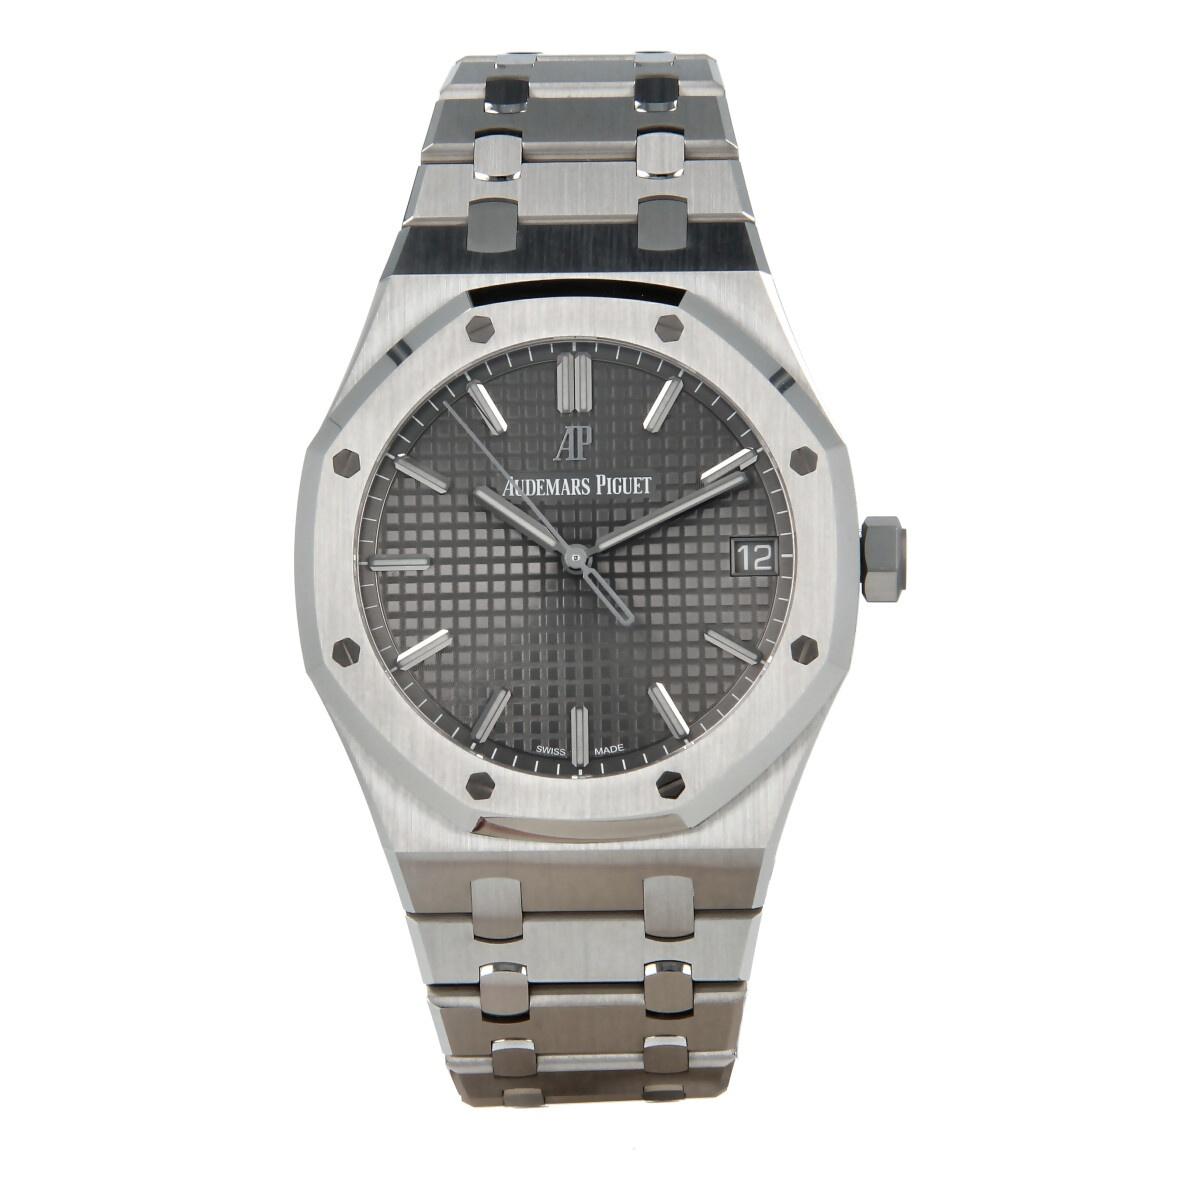 Audemars Piguet Royal Oak 15500ST Grey Dial *Brand-New* | Buy pre-owned Audemars Piguet watches